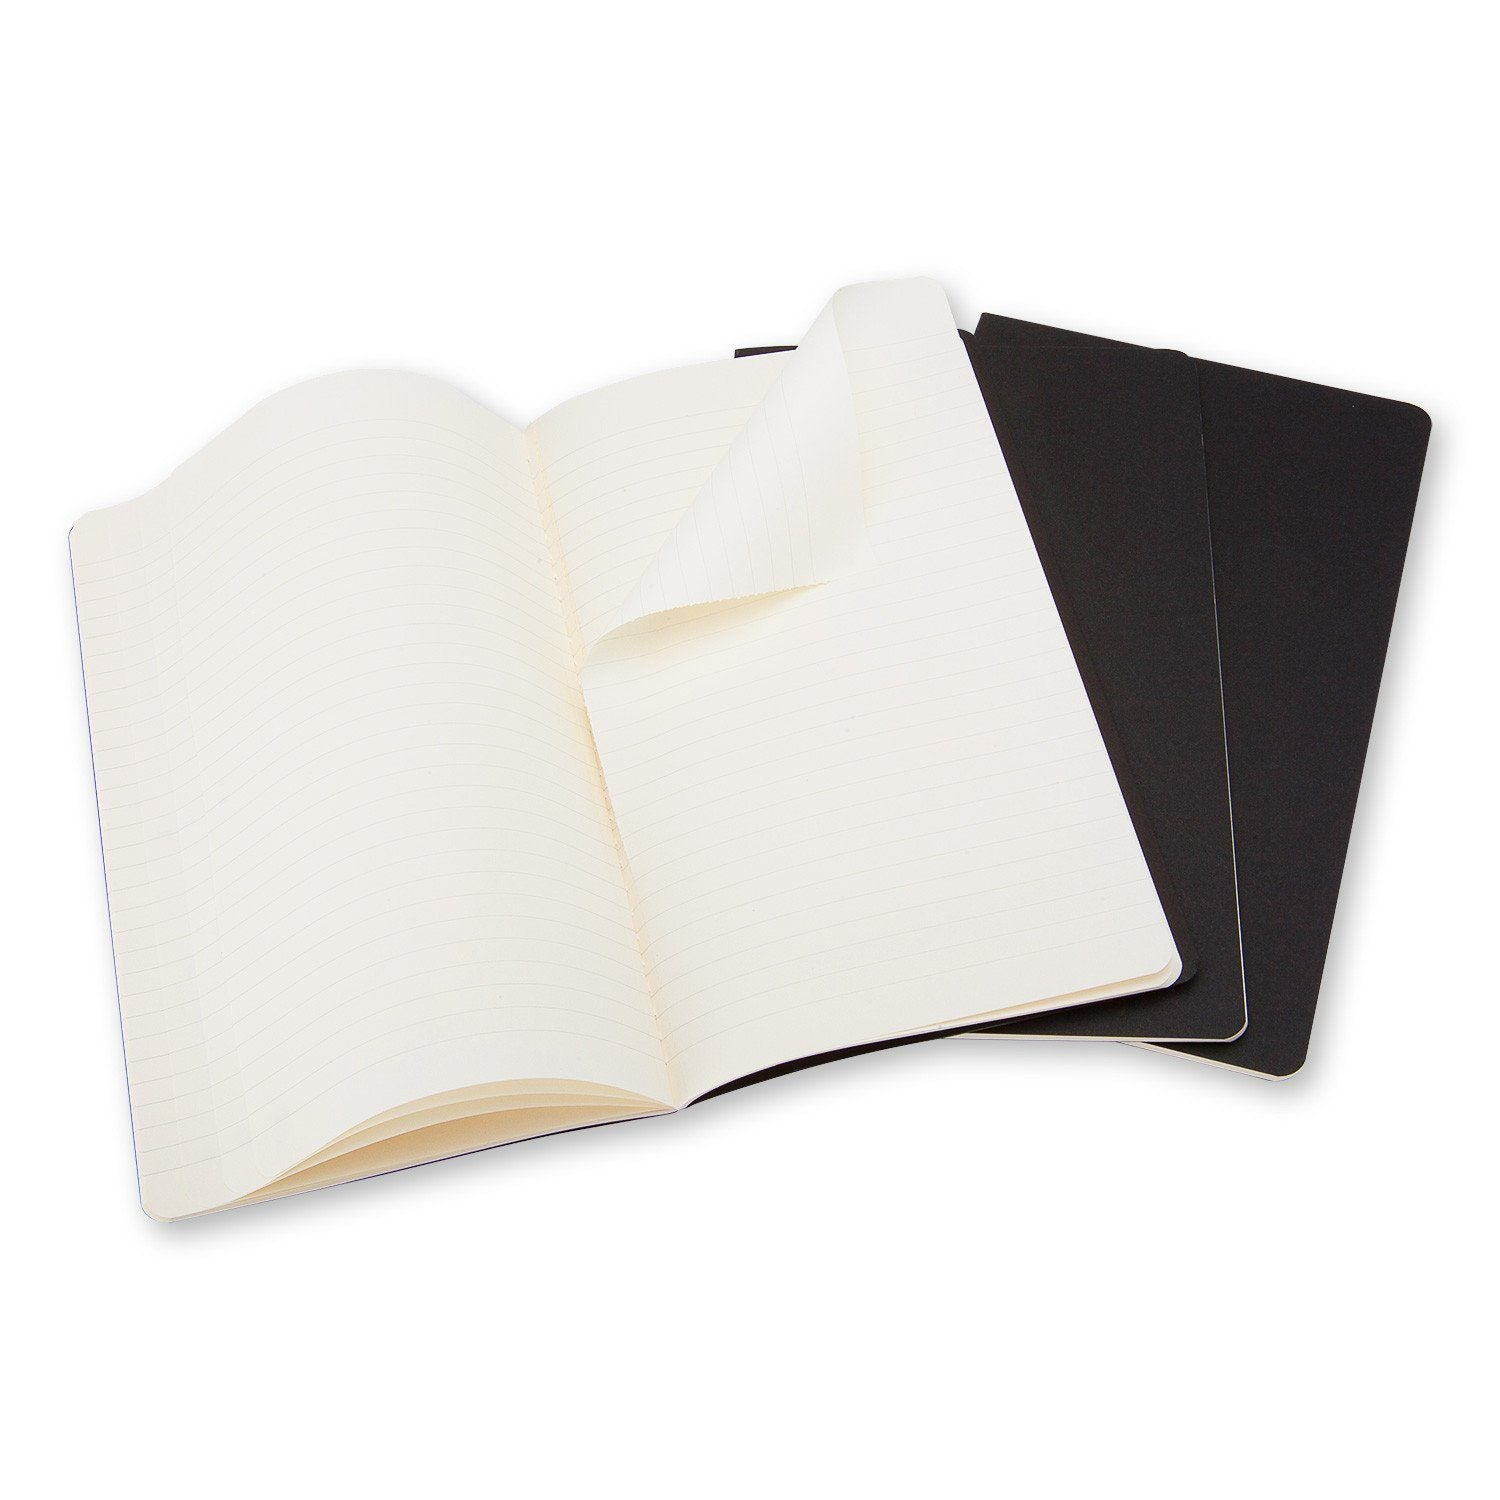 MOLESKINE® CAHIER JOURNAL - SET OF 3 PARTNER PRODUCT MOLESKINE Pocket Ruled _Black